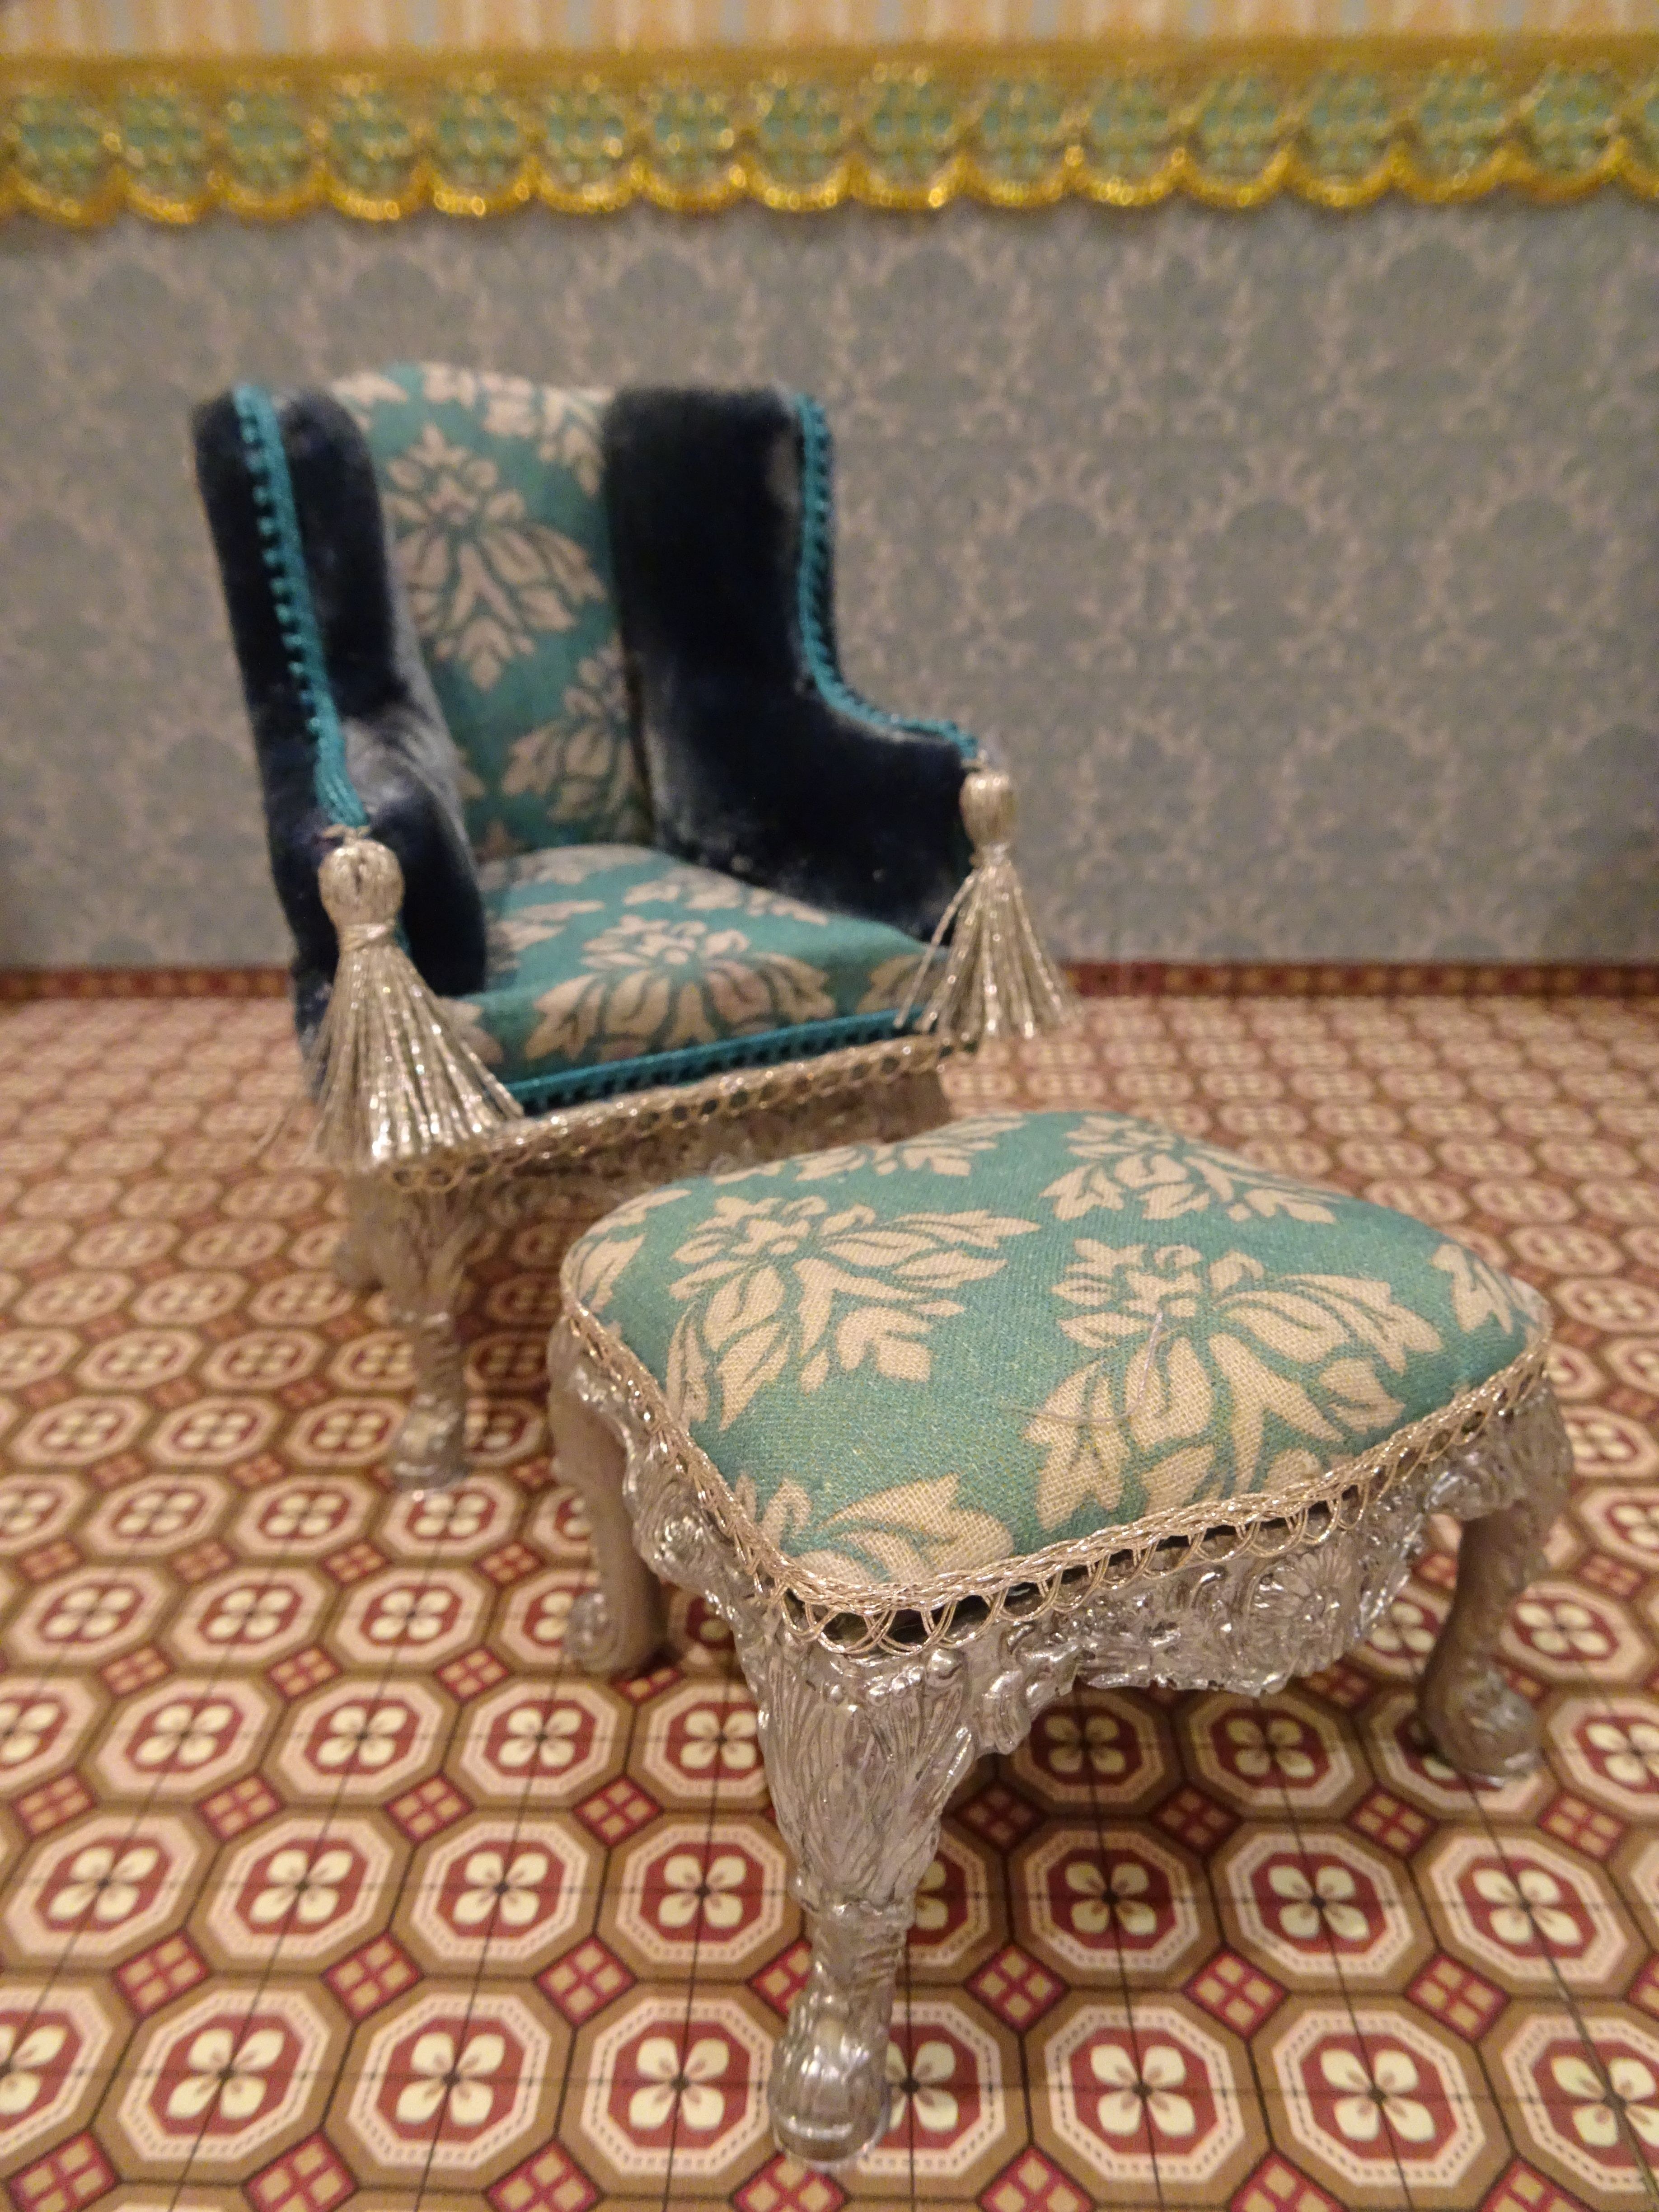 Miniatur 1 12 Mobelset Turquois Mit Led Beleuchtung Canopy Bed Ooak Puppenhaus Dolls House Handmade With Images Dressing Table Mirror Dressing Table Chair